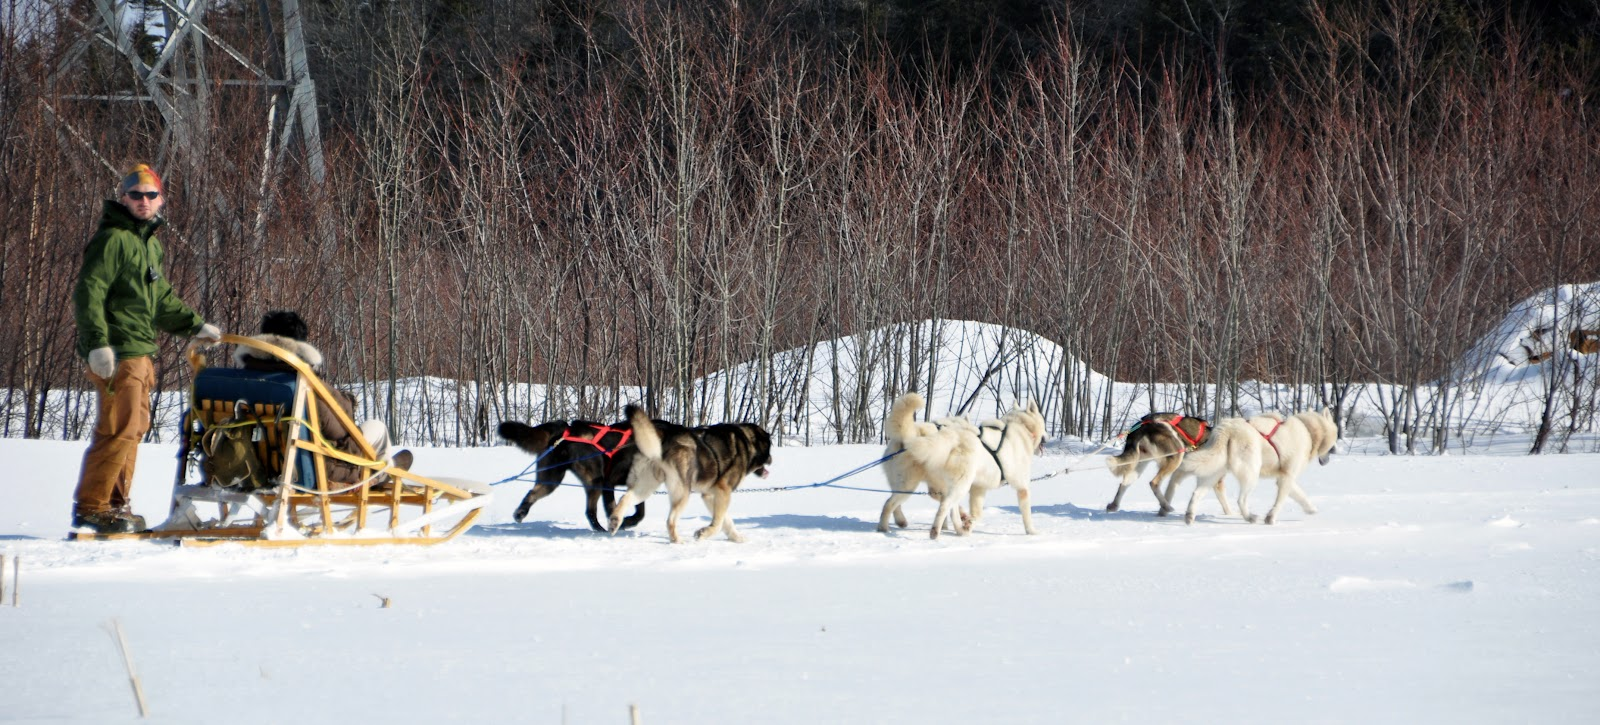 Dog_sled_quebec_2010.jpg